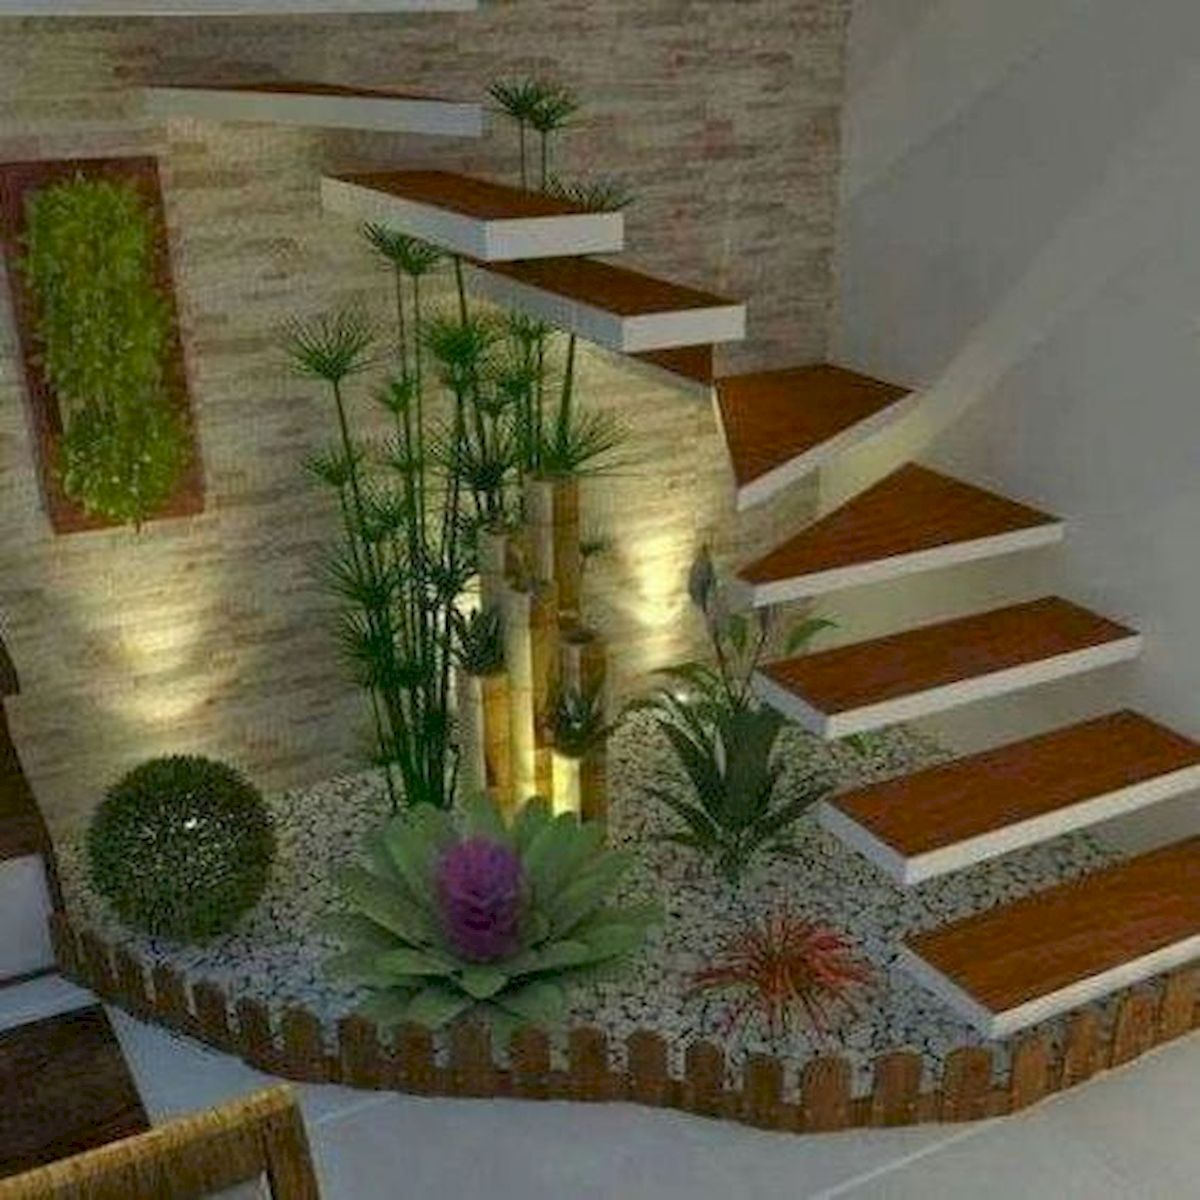 40 Awesome Indoor Garden Design Ideas That Look Beautiful (19)